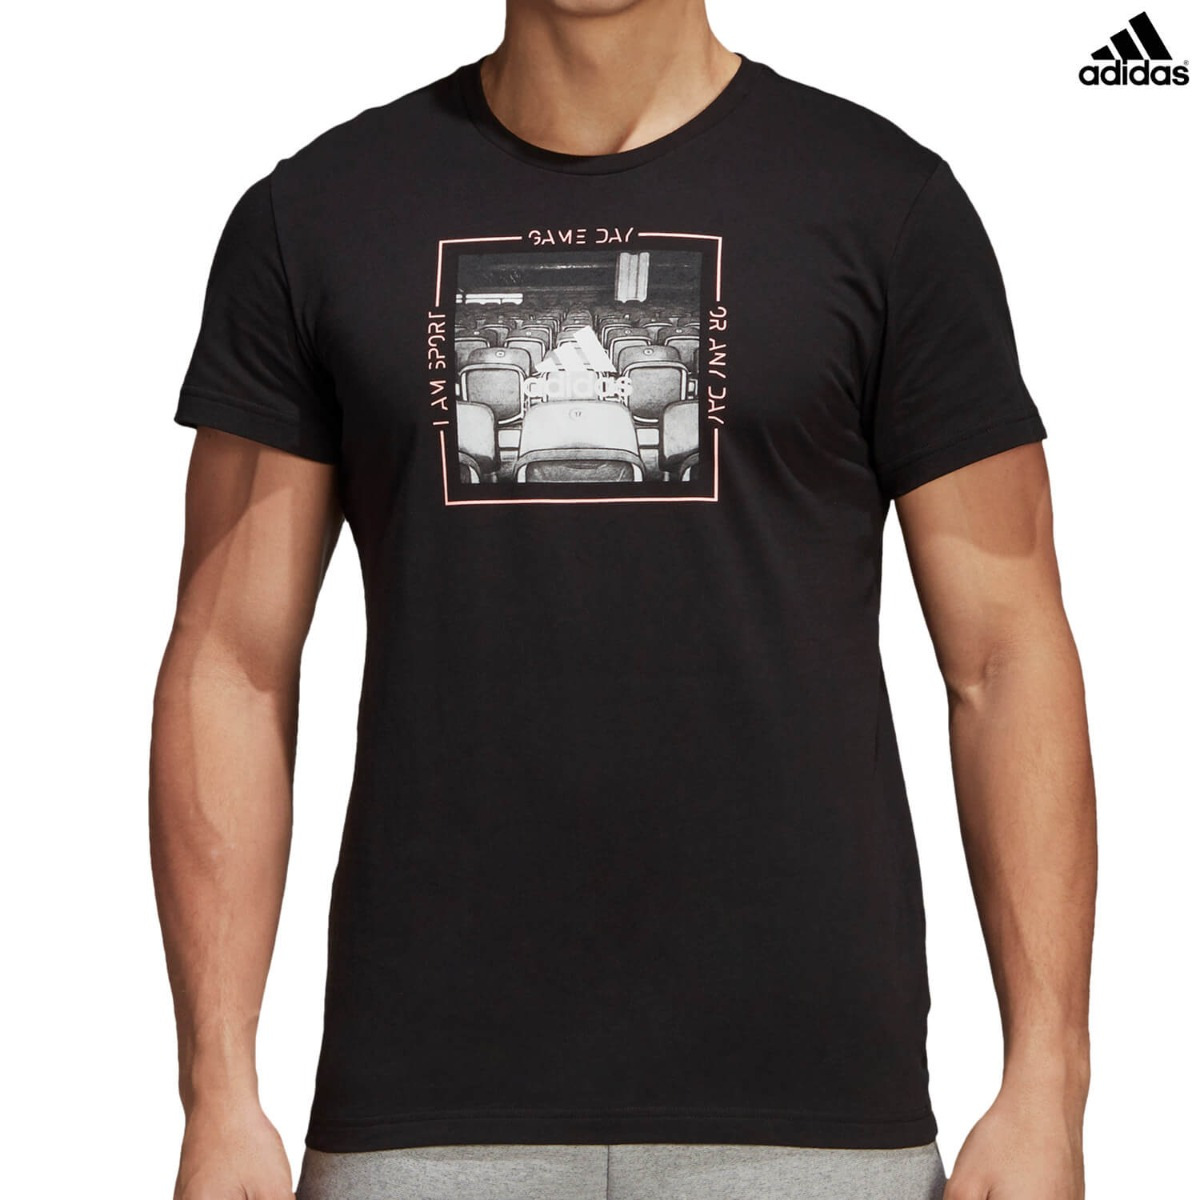 Category Men's Ath Adidas Shirt Ath Category Adidas RLSAc354jq